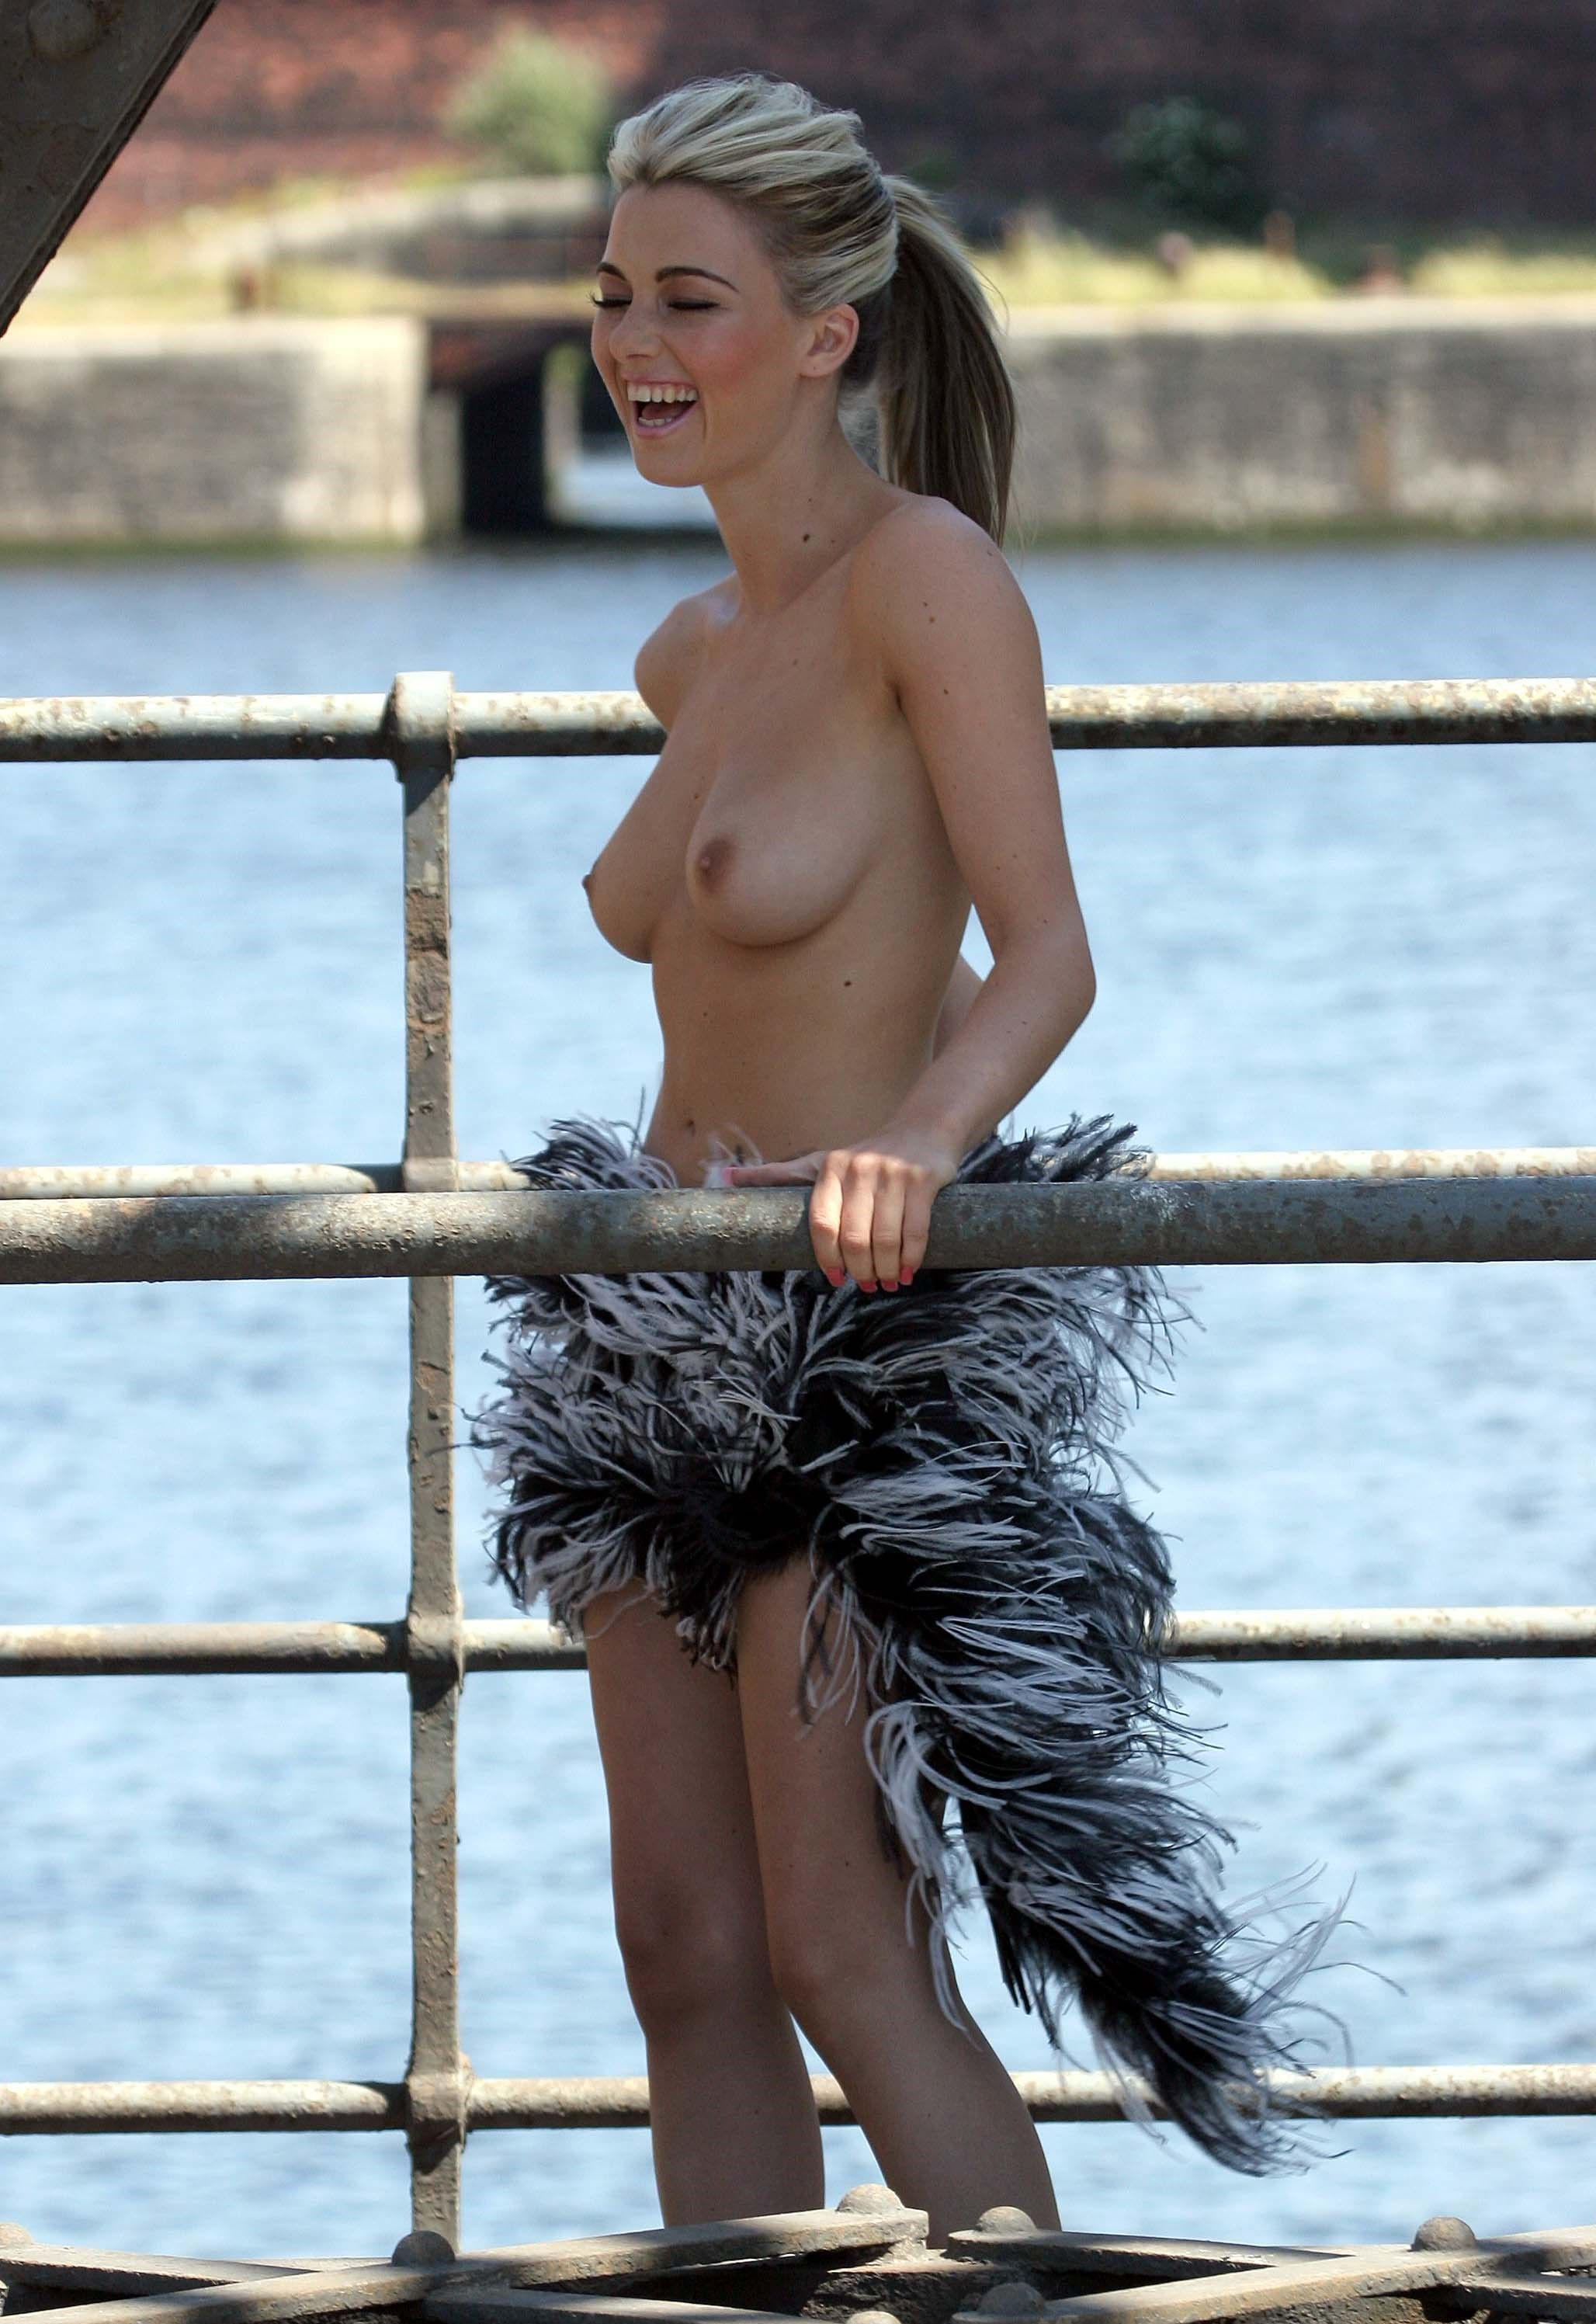 Katie downes topless 7 photos naked (51 photo), Is a cute Celebrites fotos